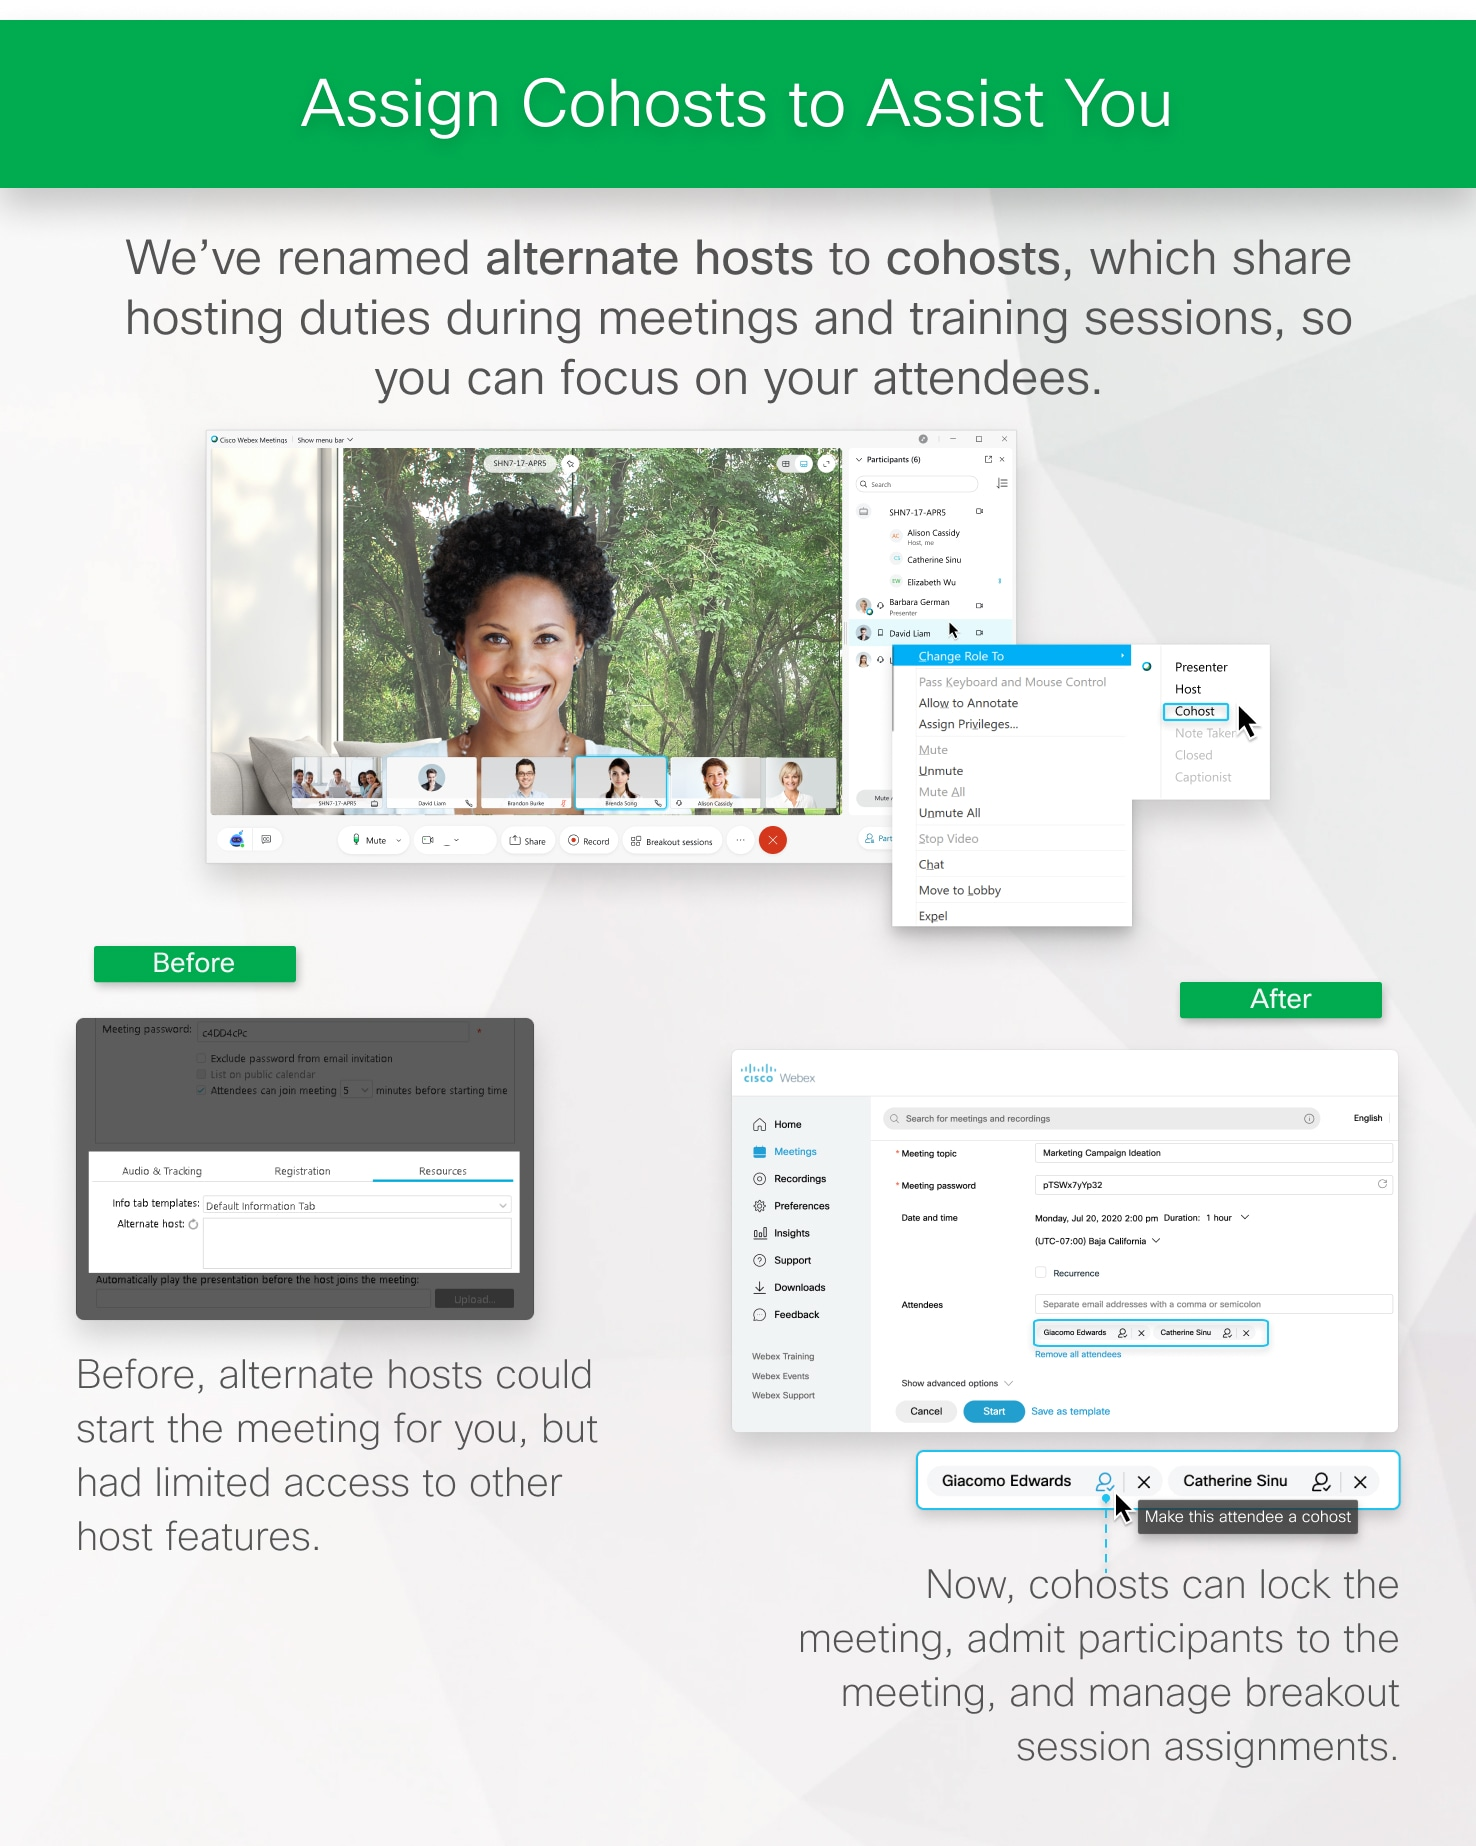 We've renamed Alternate Hosts to Cohosts, which share hosting duties during meetings and training sessions, so you can focus on your attendees.